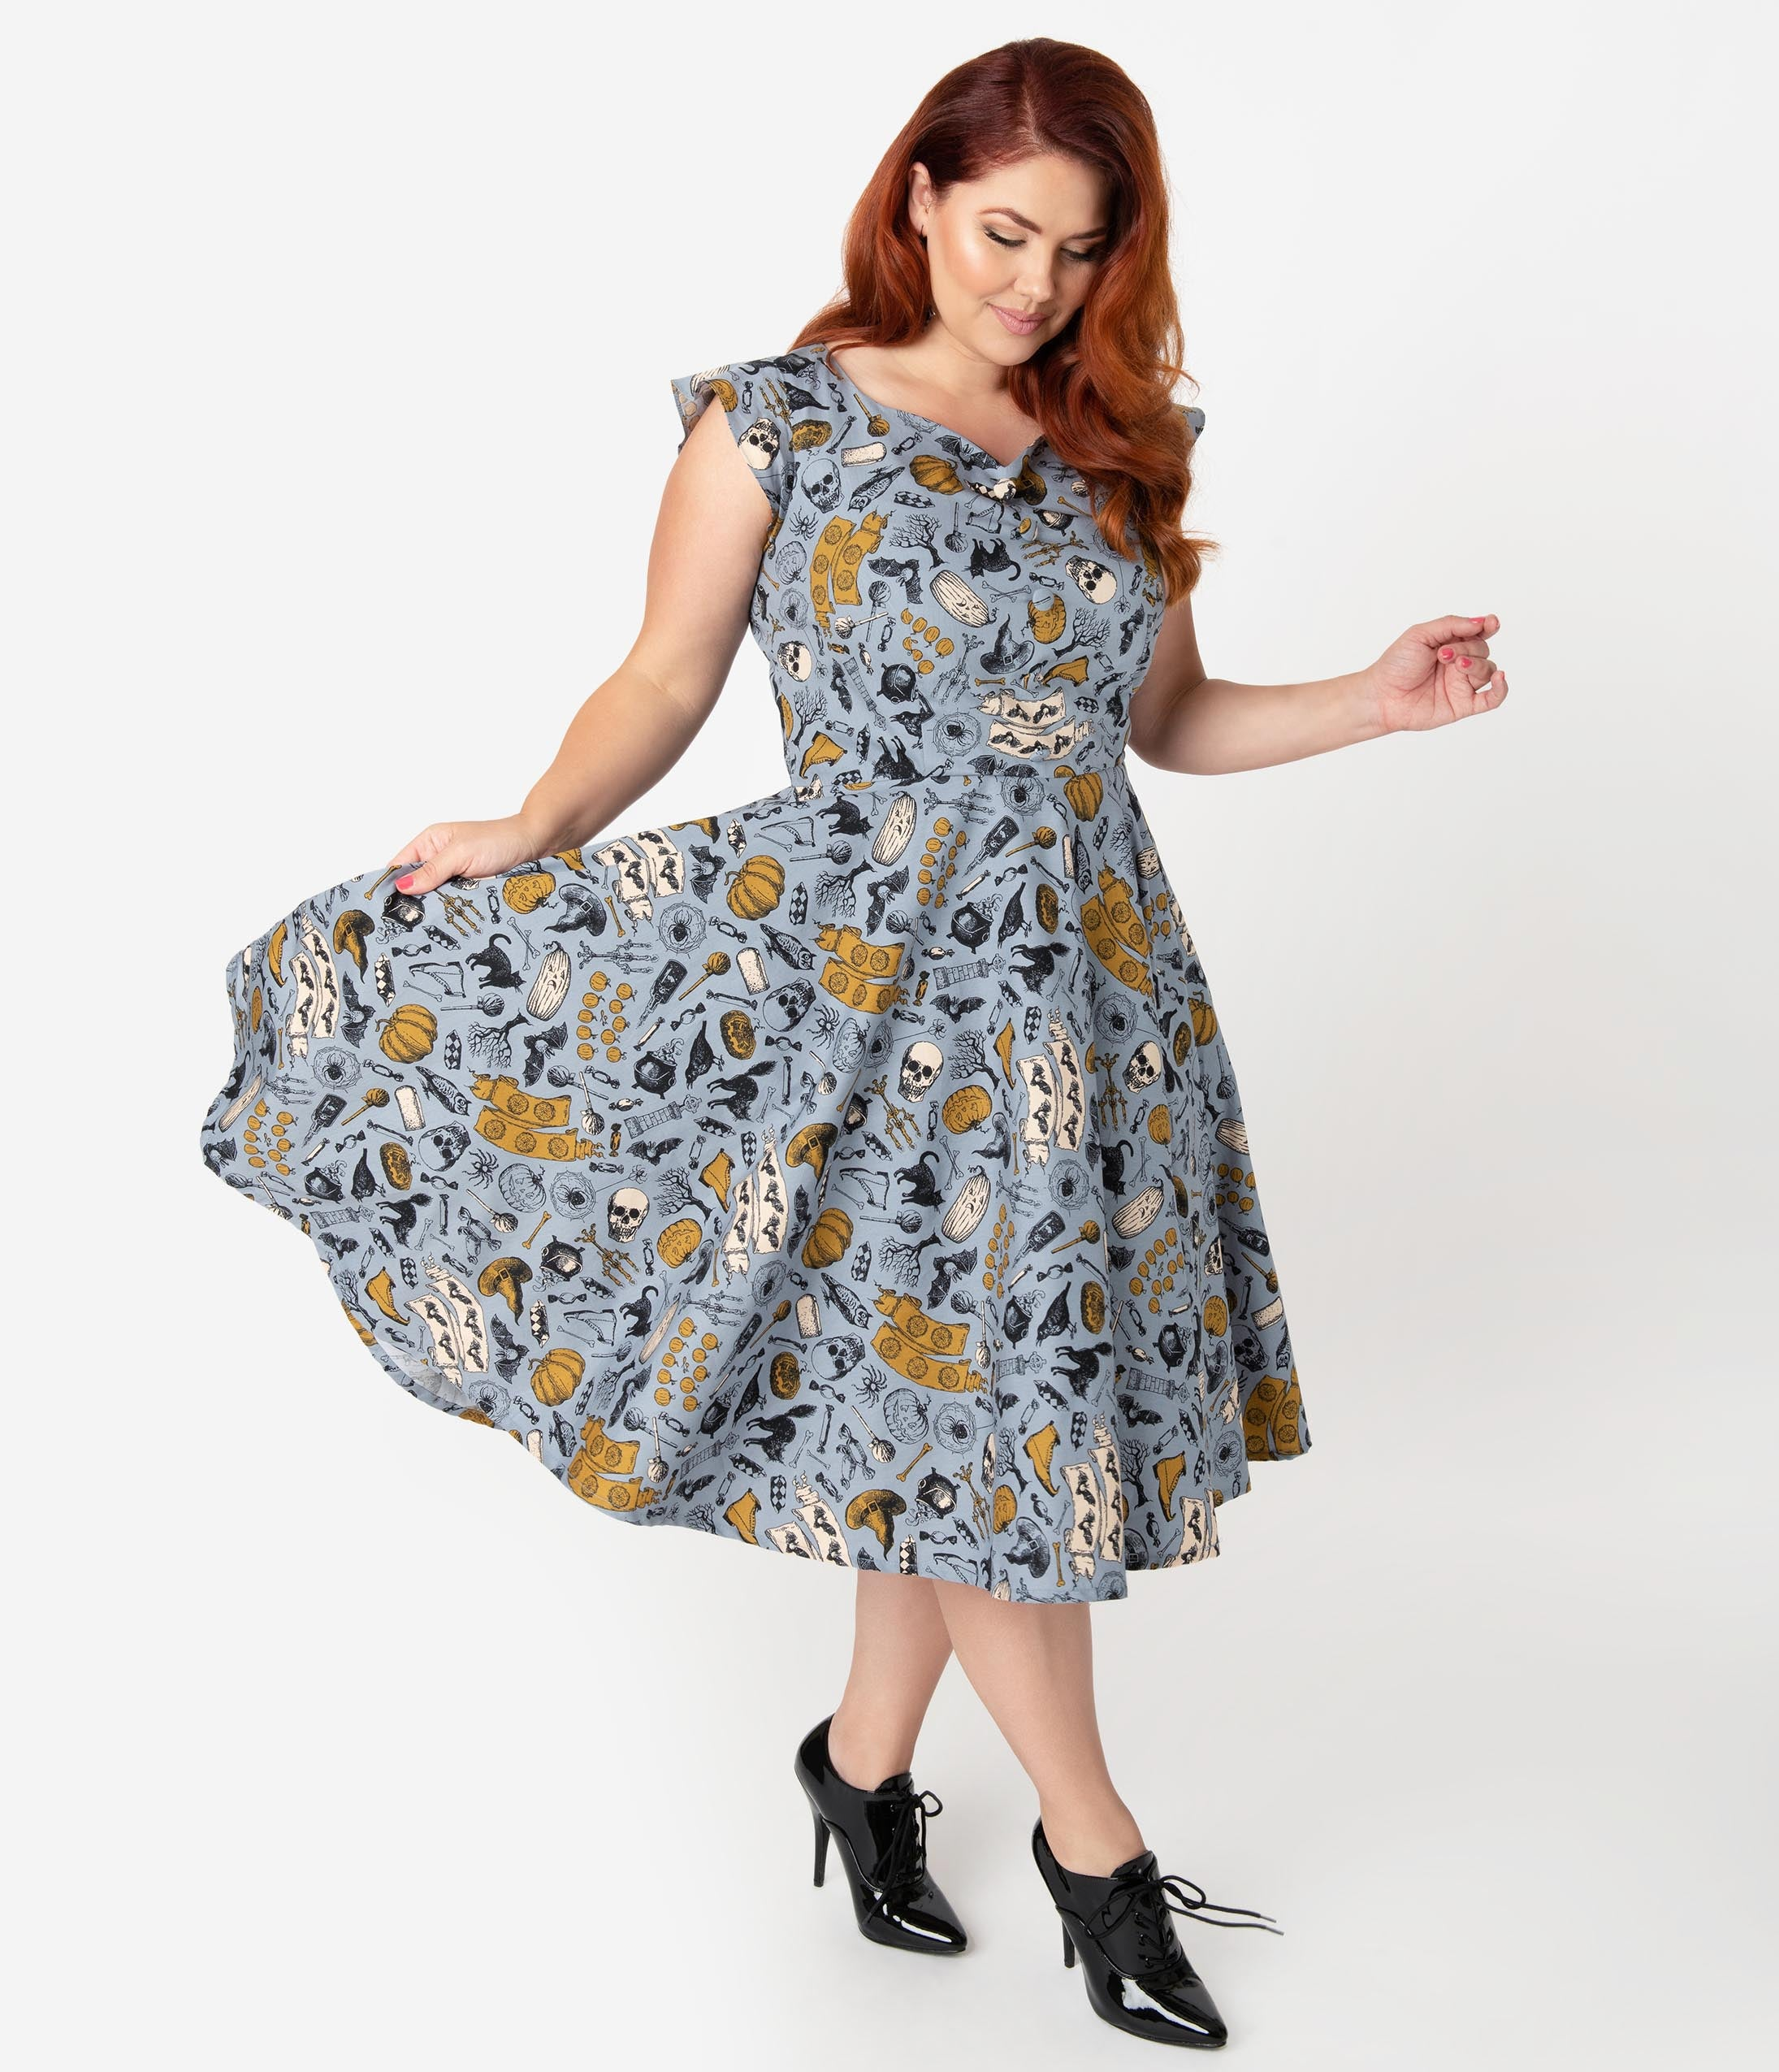 50 Vintage Halloween Costume Ideas Plus Size 1950S Style Dusty Blue Halloween Print Judy Swing Dress $68.00 AT vintagedancer.com